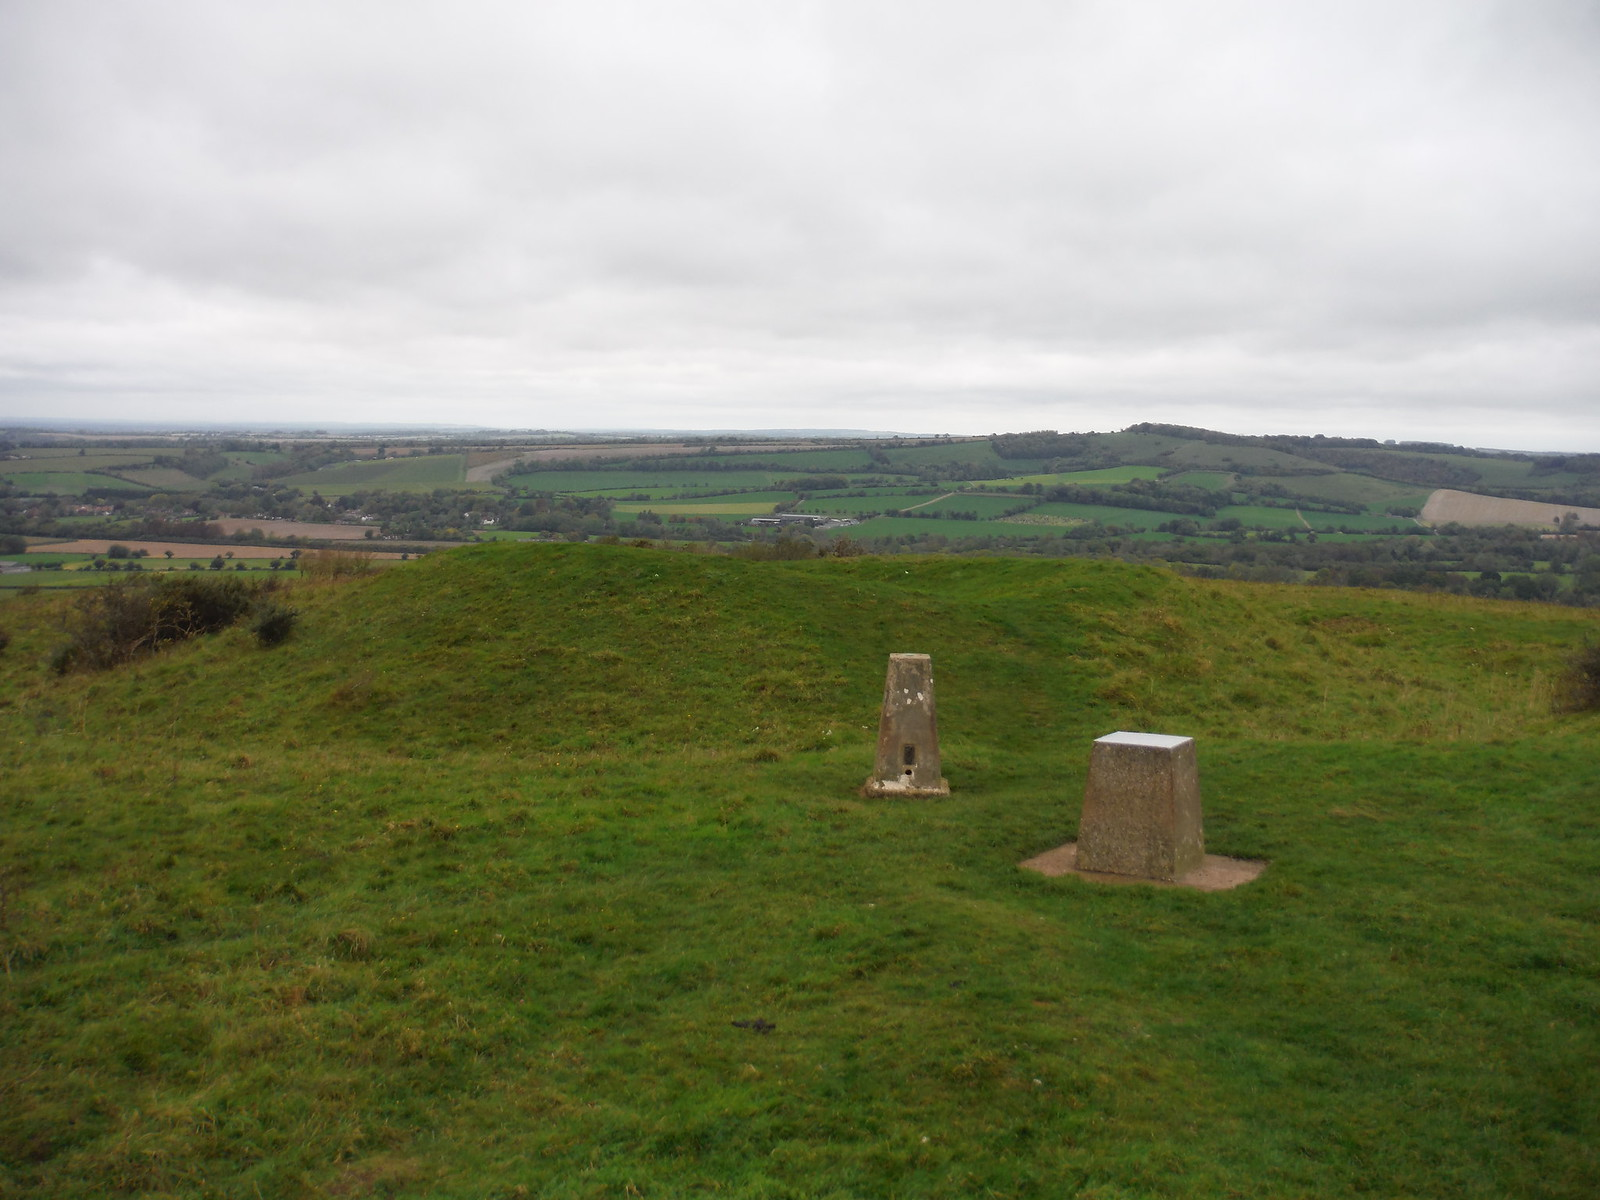 Barrow, Toposcope and Trigpoint on Old Winchester Hill SWC Walk 183 - South Downs Way Section 2: West Meon to Petersfield